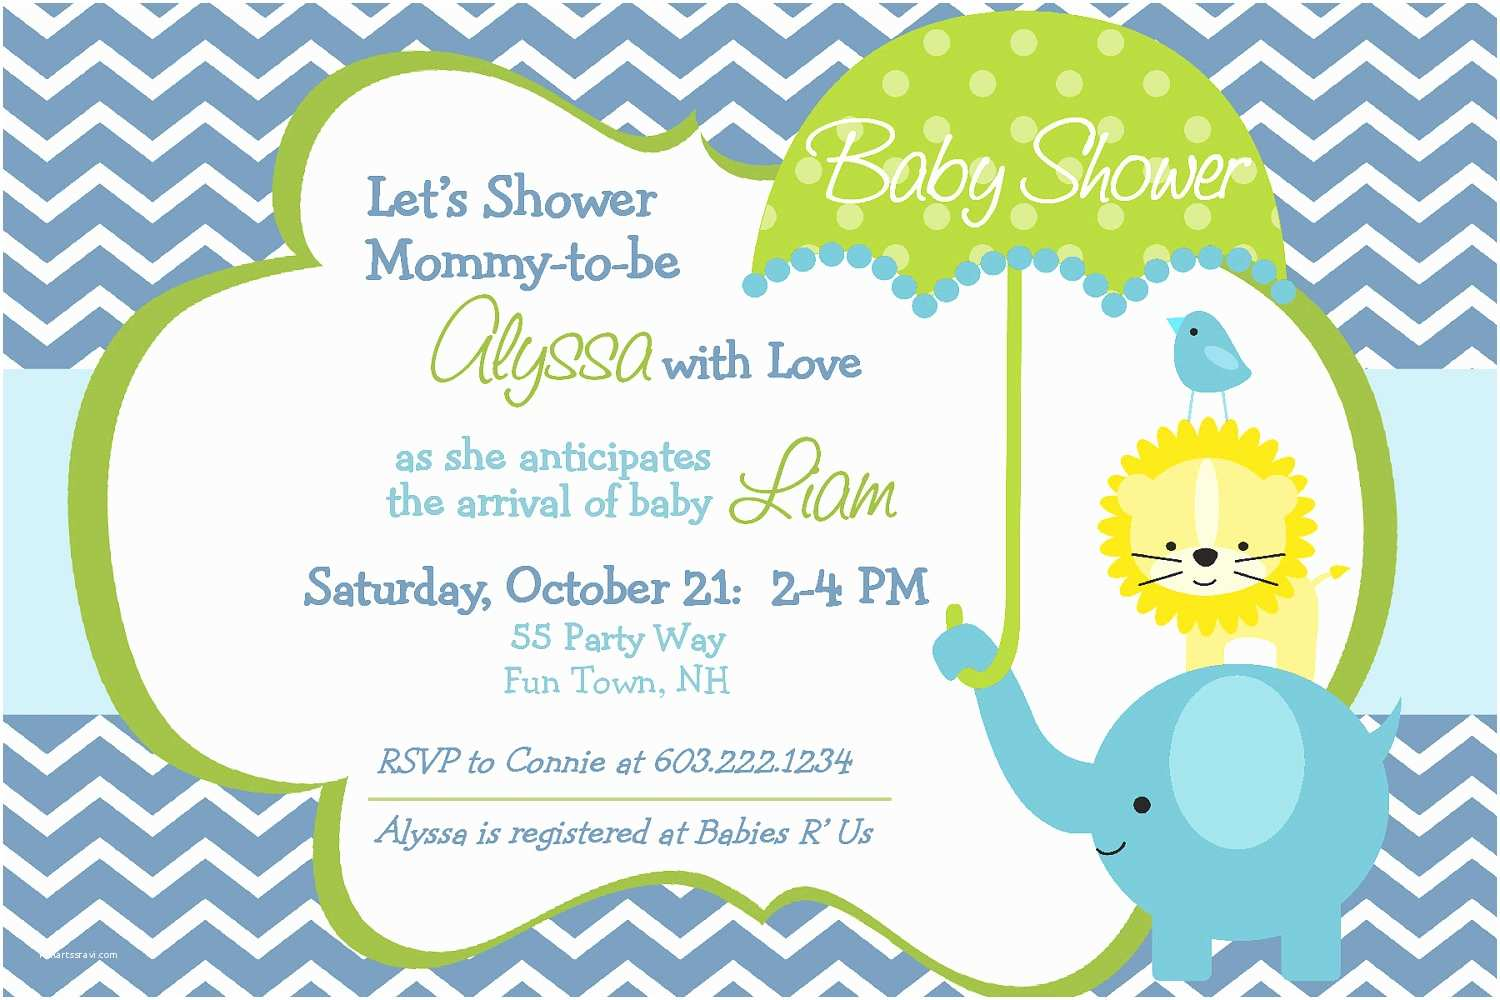 Create Baby Shower Invitations Baby Shower Invites Templates Charming Design Create